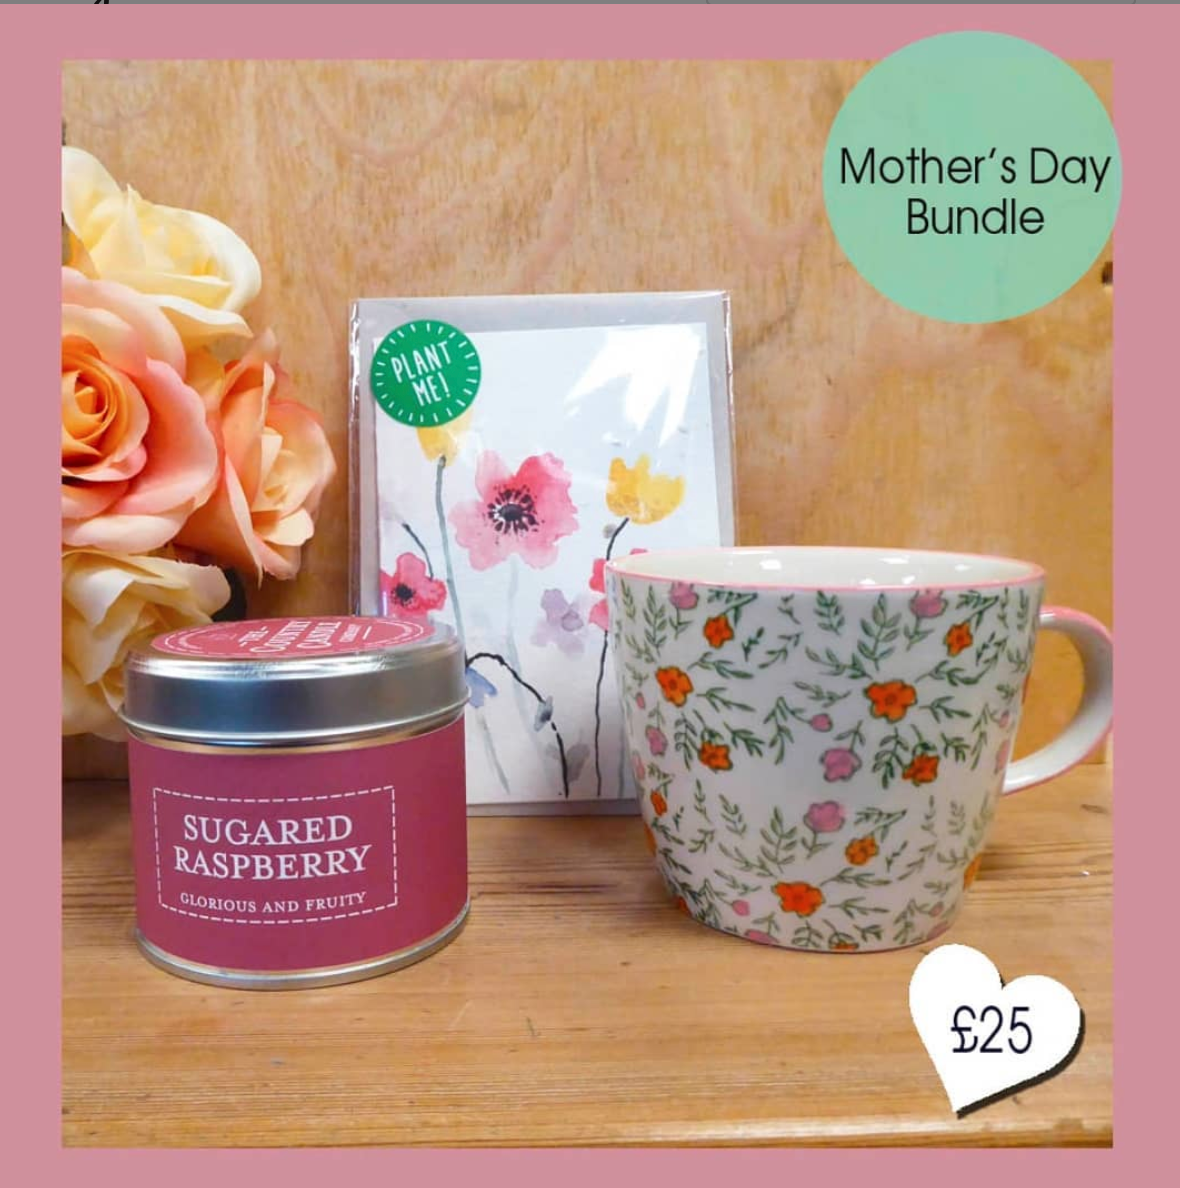 Above: A Mother's Day bundle from The Indigo Tree.